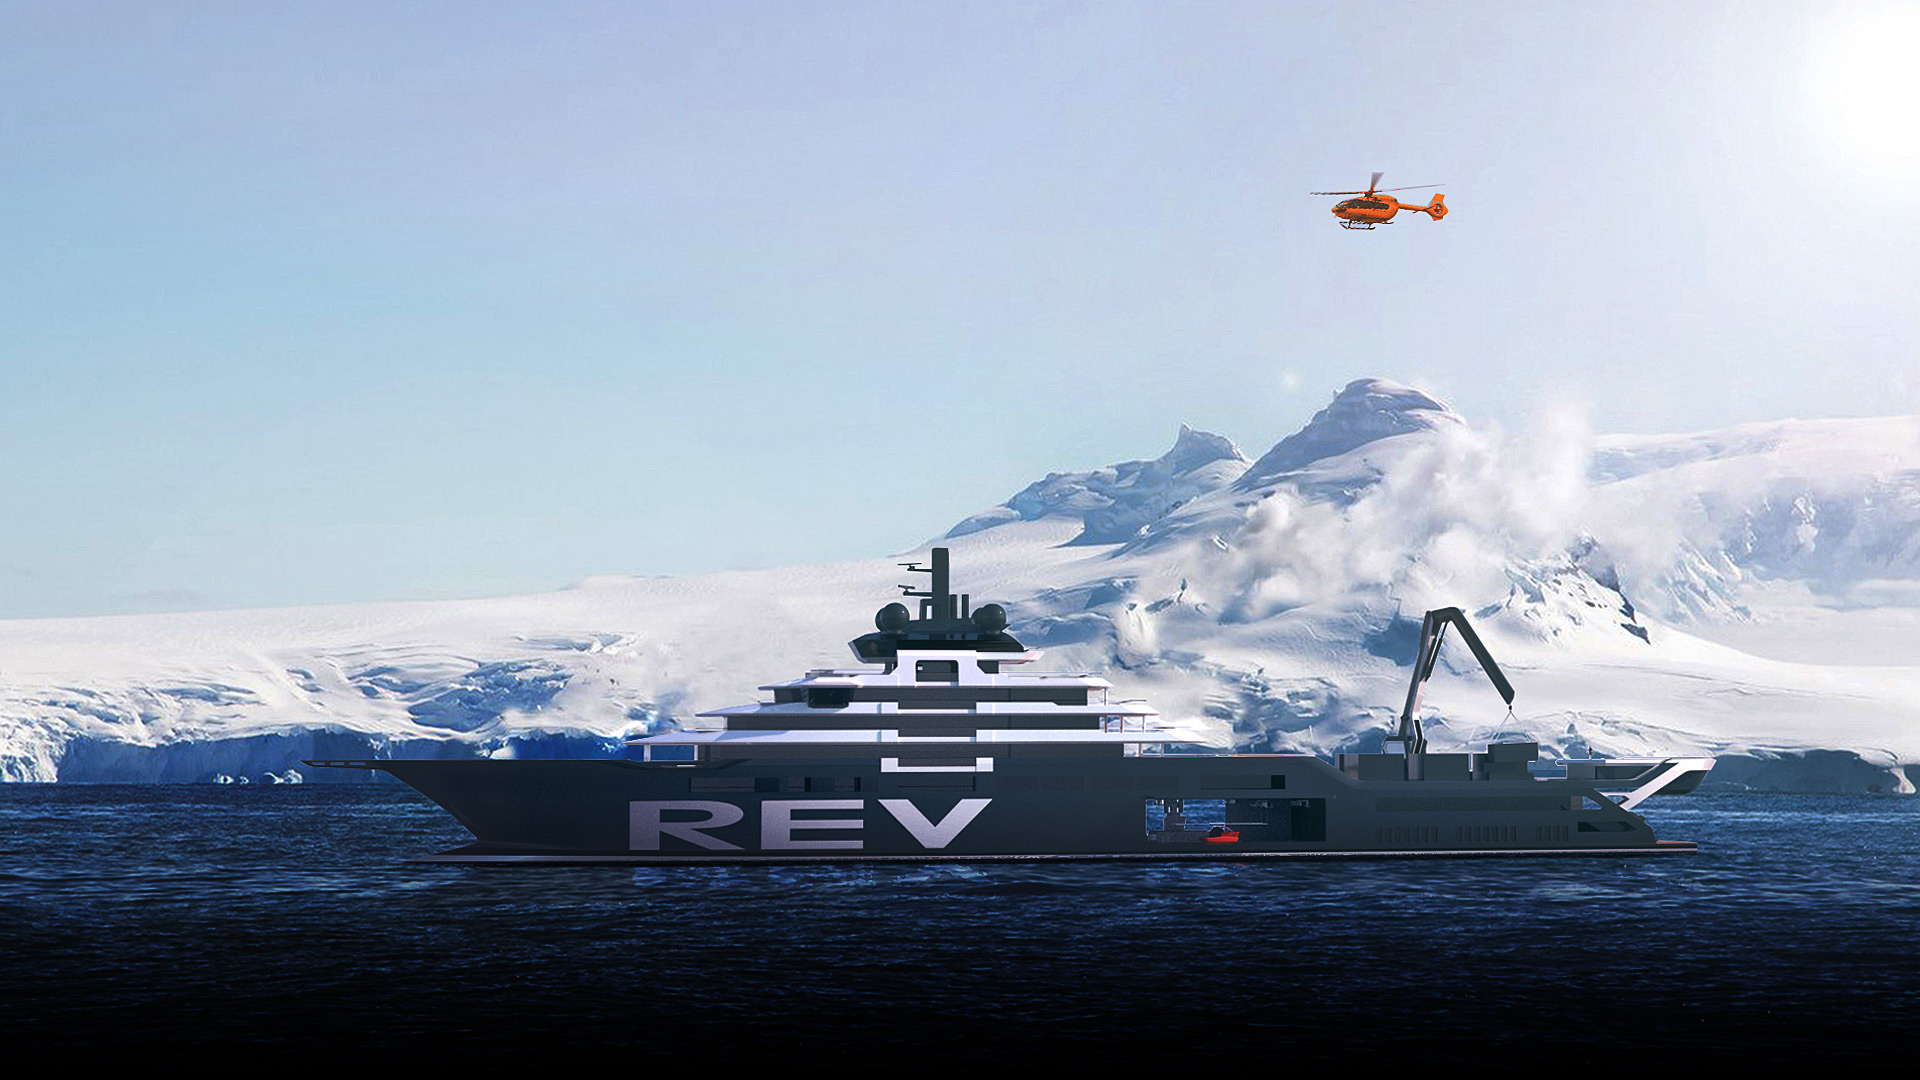 REV - Vard Holdings